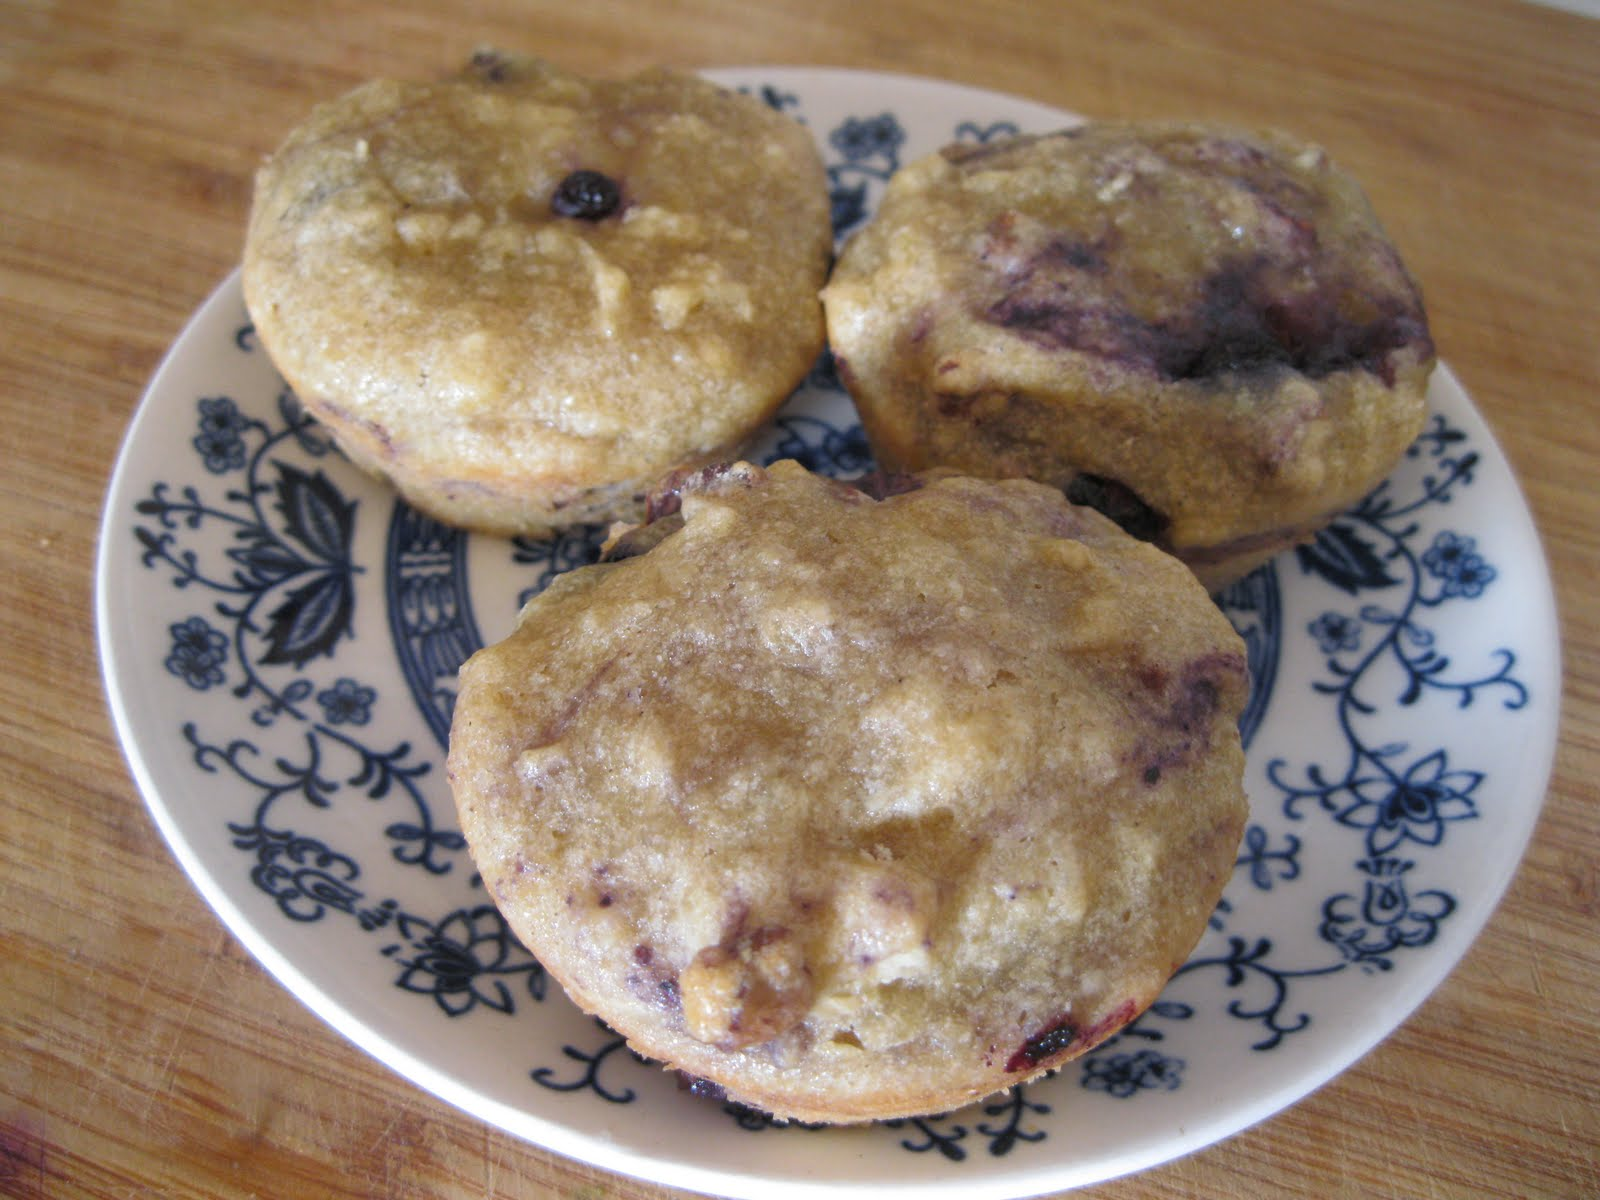 Very Impressive portraiture of Fit Fun Vegan: Gluten and Sugar Free Blueberry Pecan Muffins with #856B46 color and 1600x1200 pixels